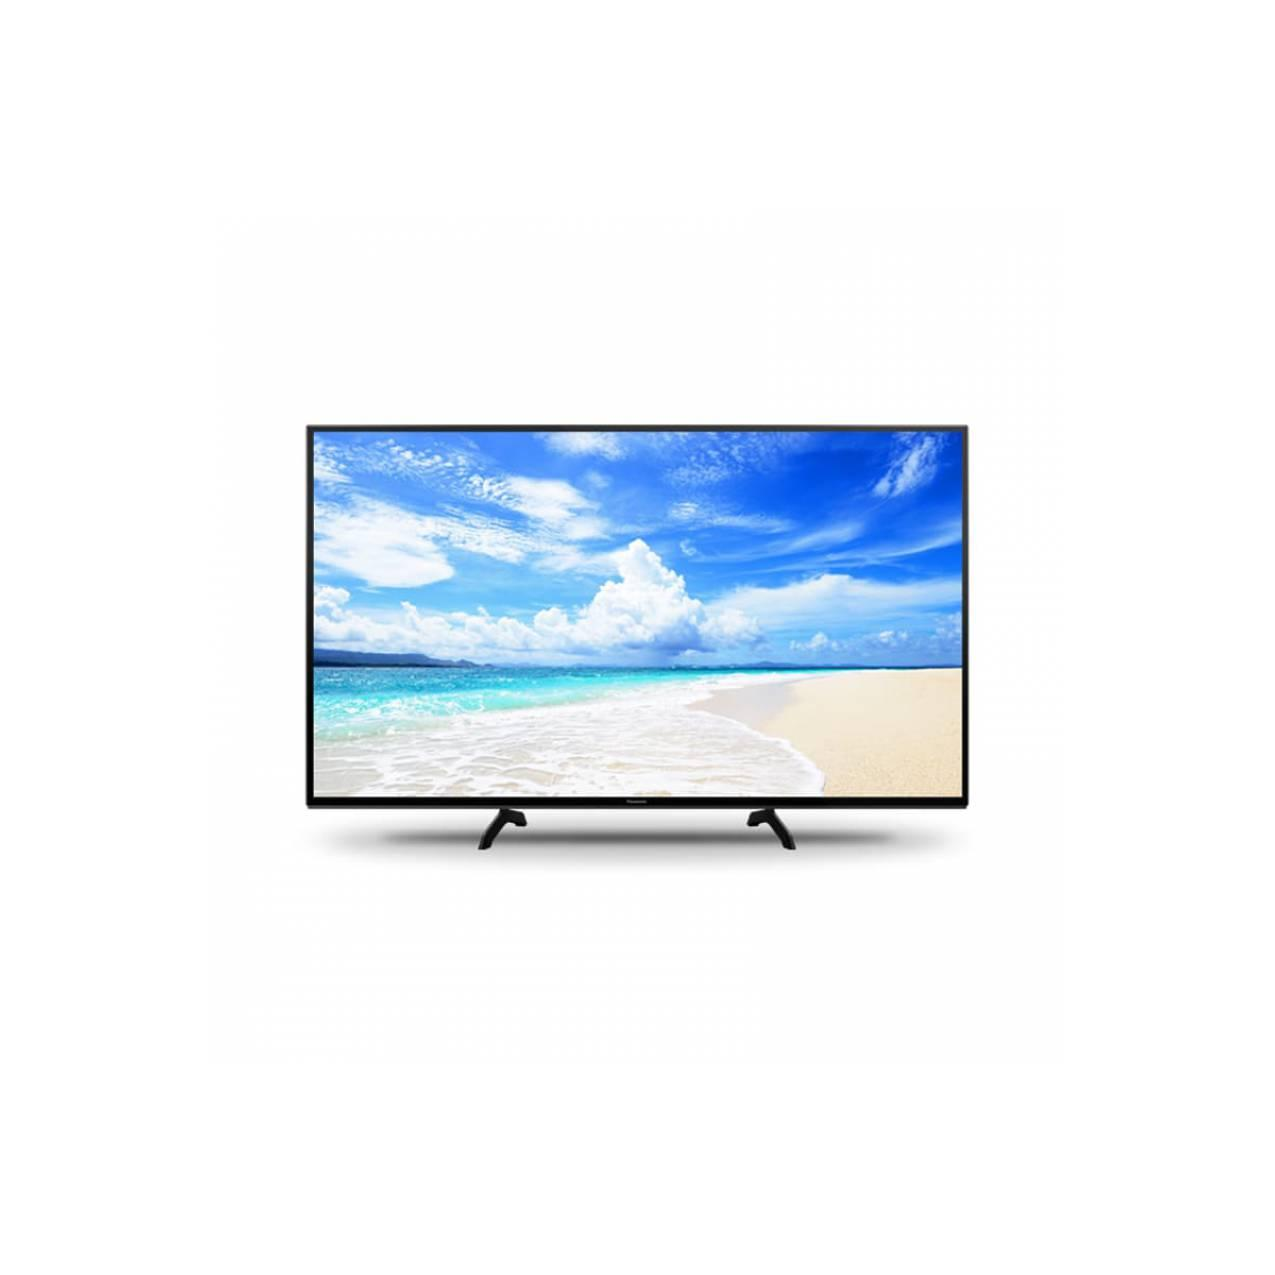 Panasonic LED TV 50